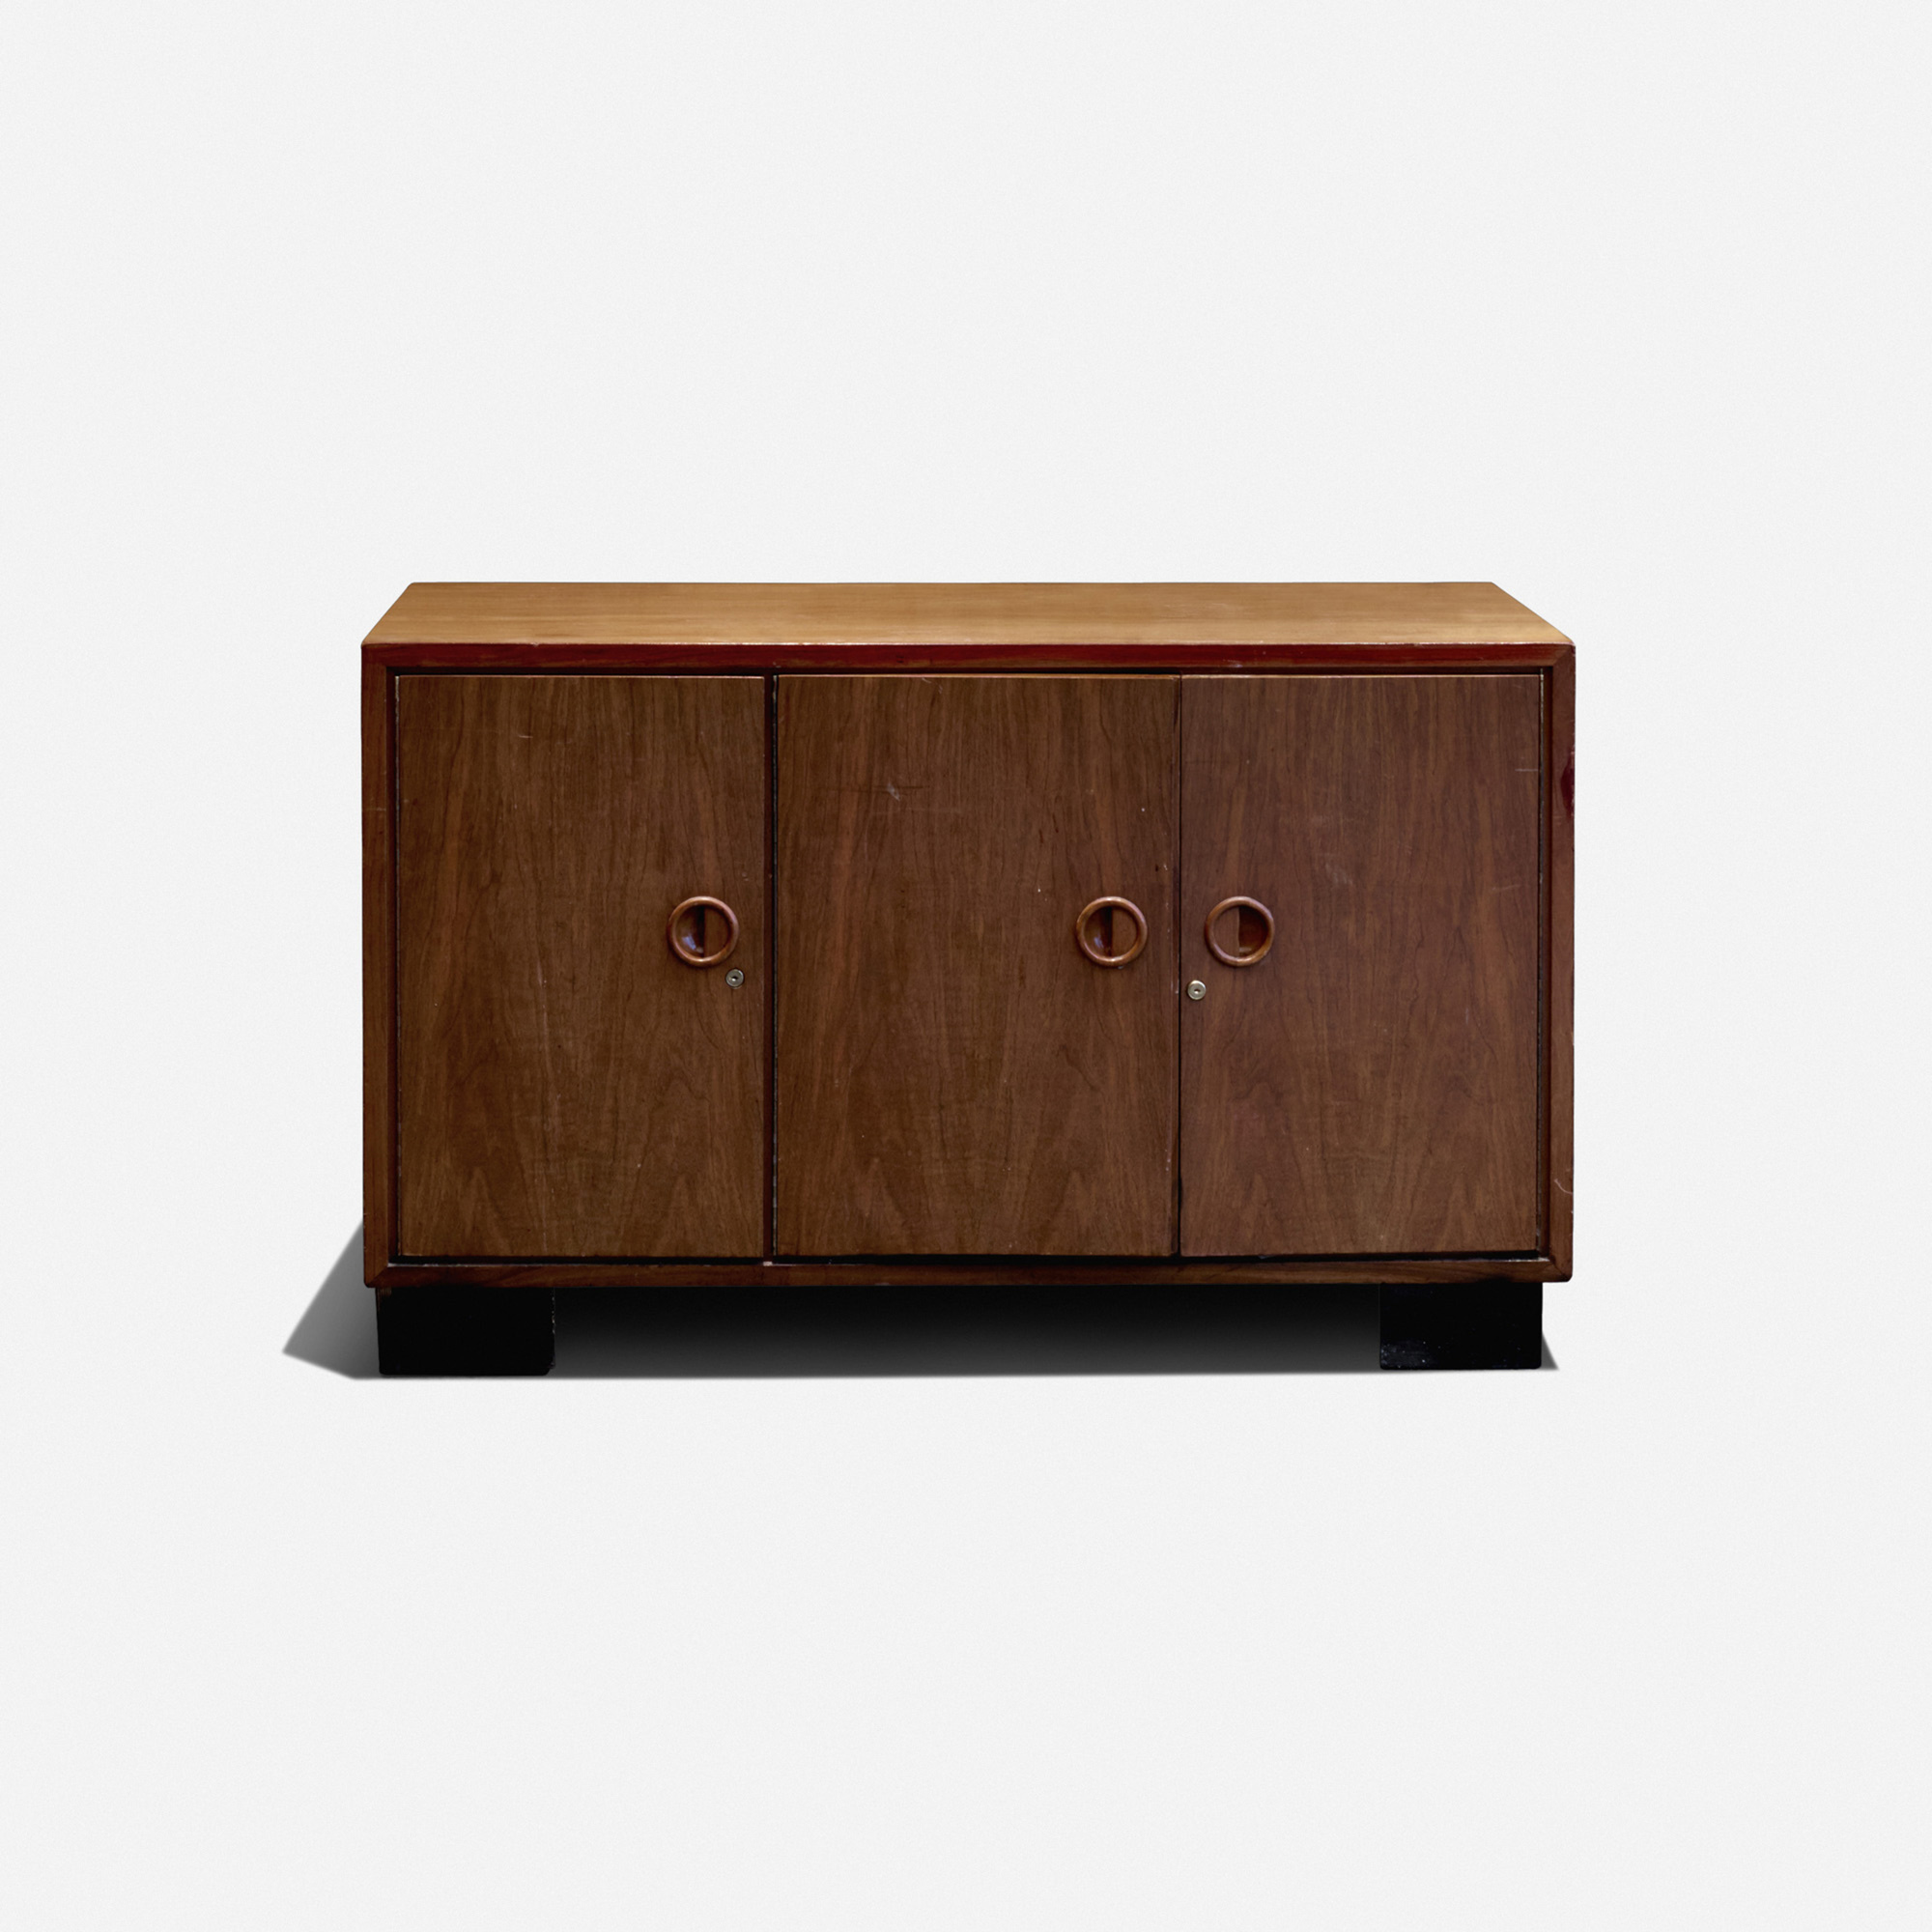 803: Philip Johnson Associates / Serving Cabinet From The Private Dining  Room No. 3